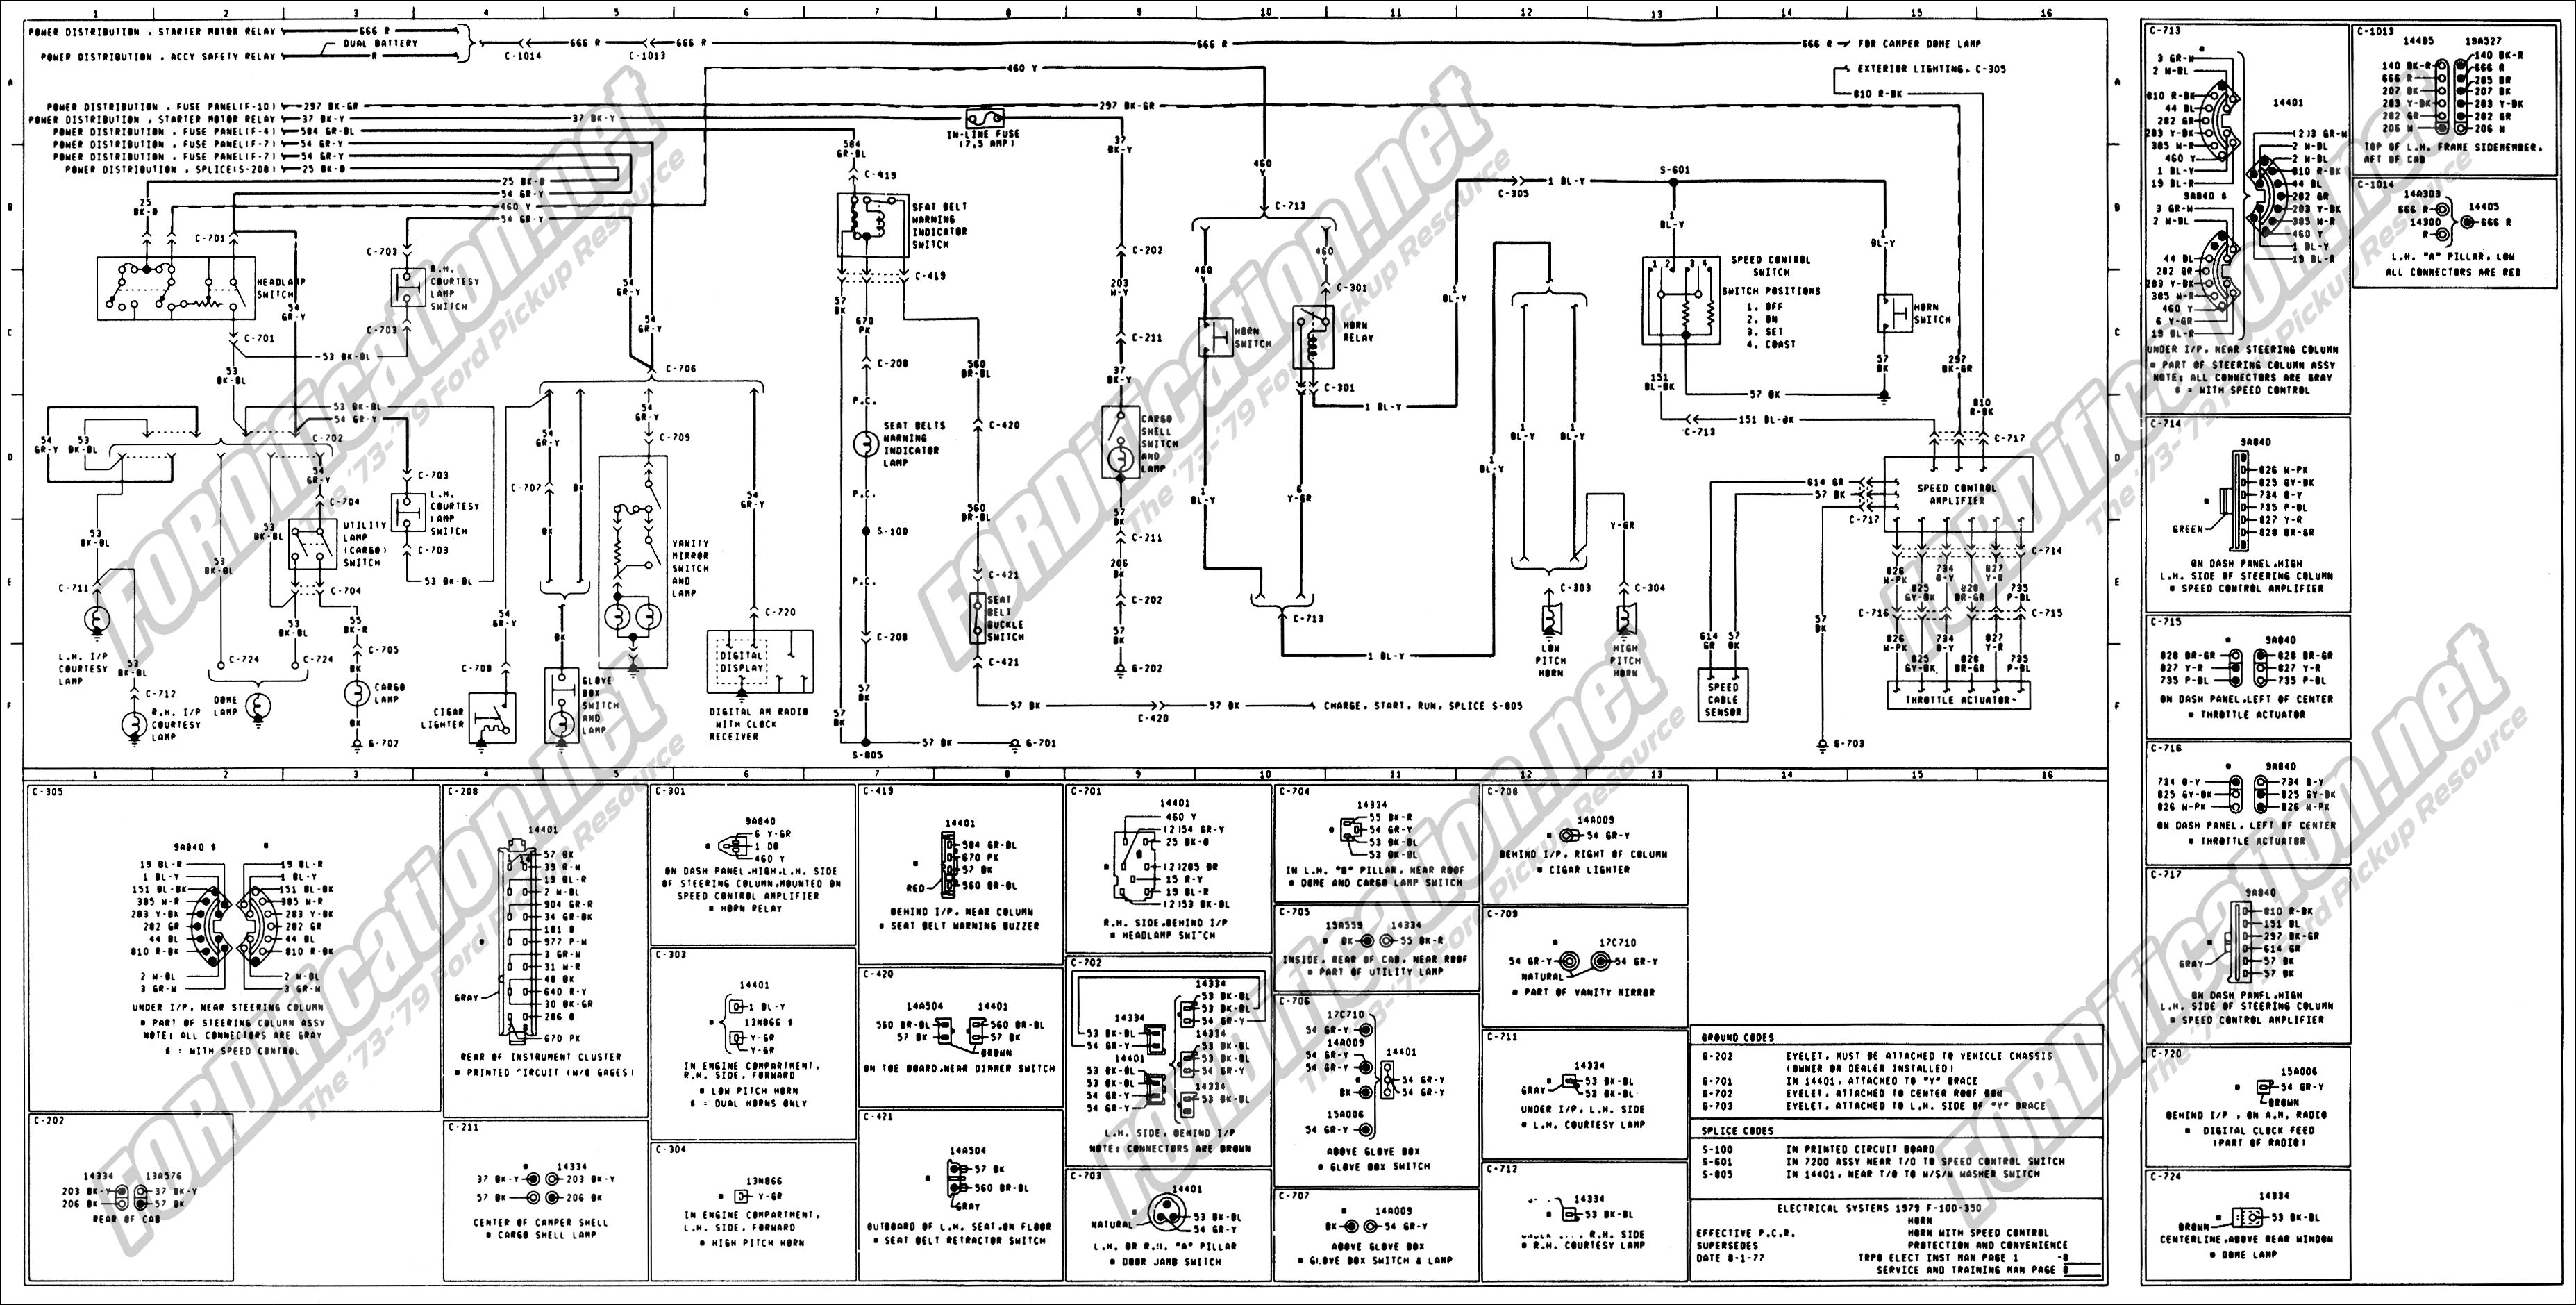 wiring_79master_8of9 1973 1979 ford truck wiring diagrams & schematics fordification net 1970 Ford F-250 Wiring Diagram at soozxer.org